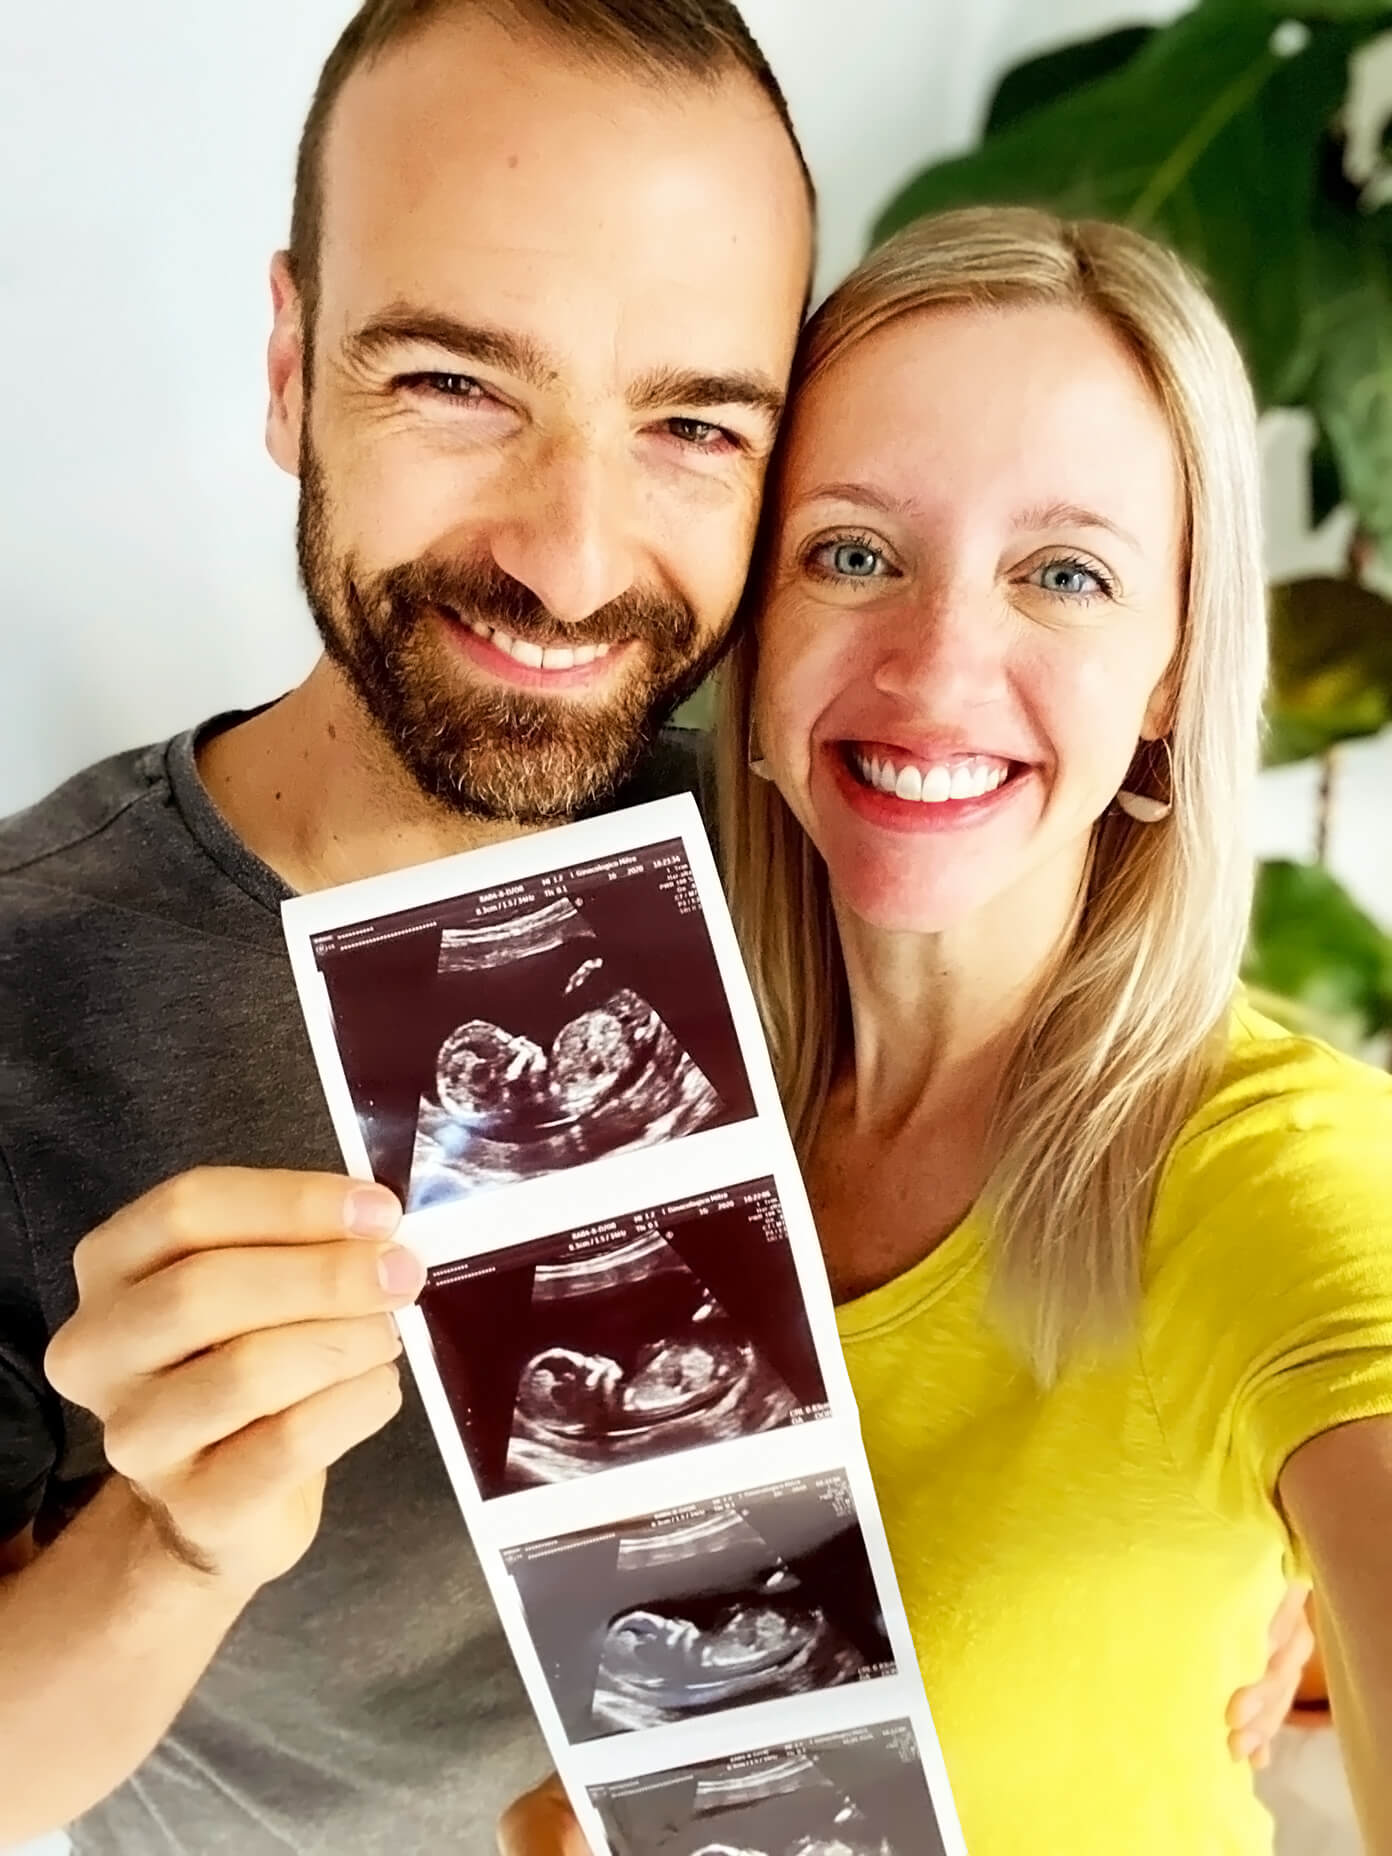 Ali and Barclay Holding Sonogram Photos